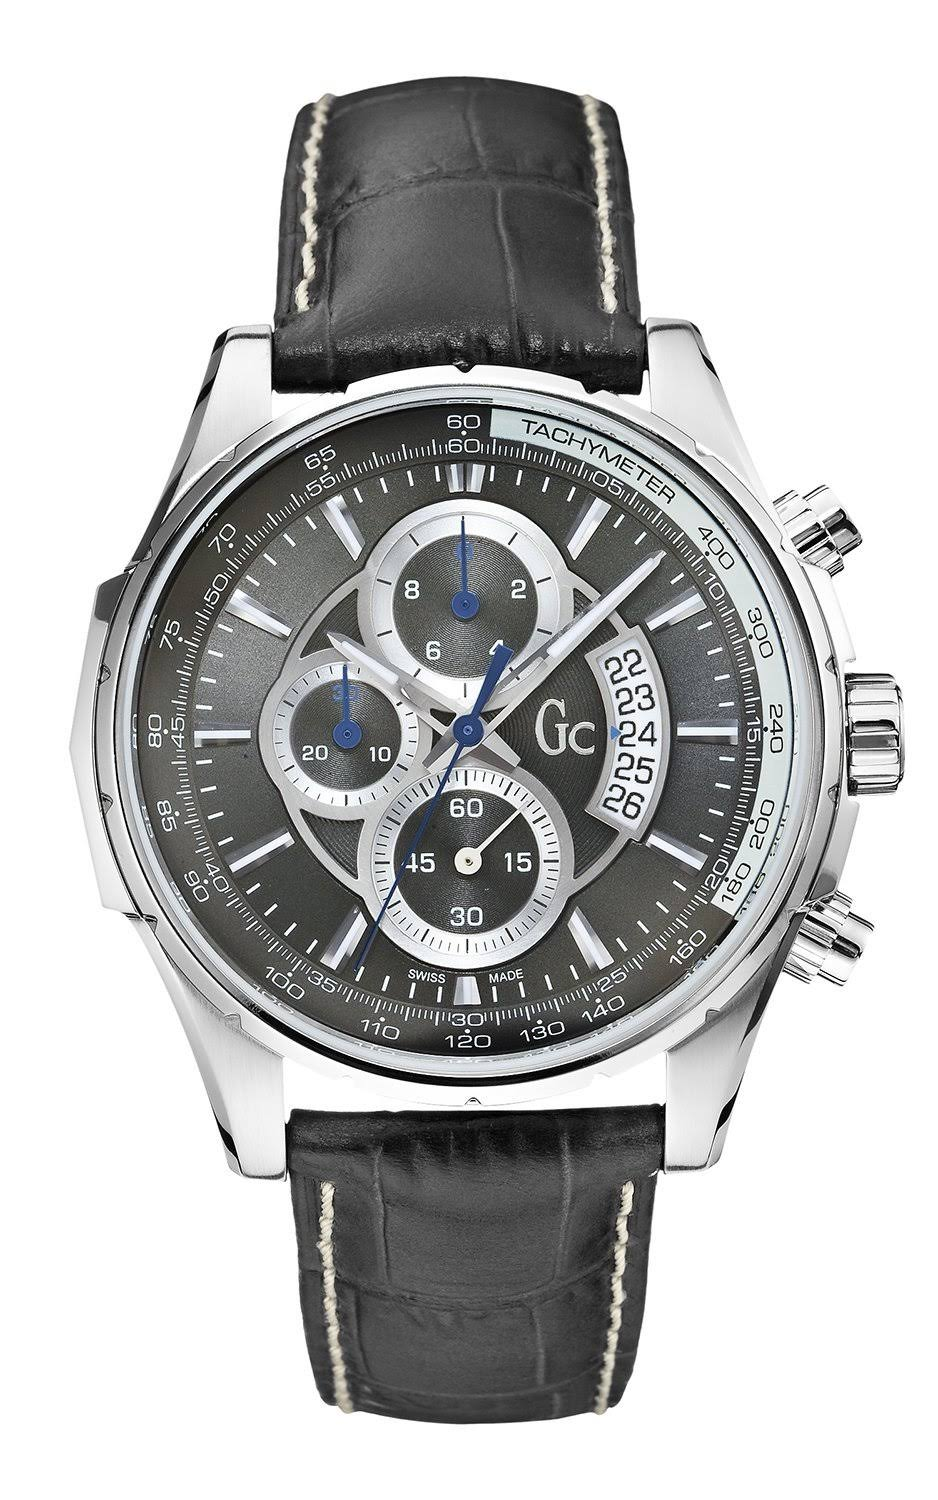 top 9 most popular guess watches under £200 best buy for men guess collection x81005g5s 44mm stainless steel case calfskin men s watch